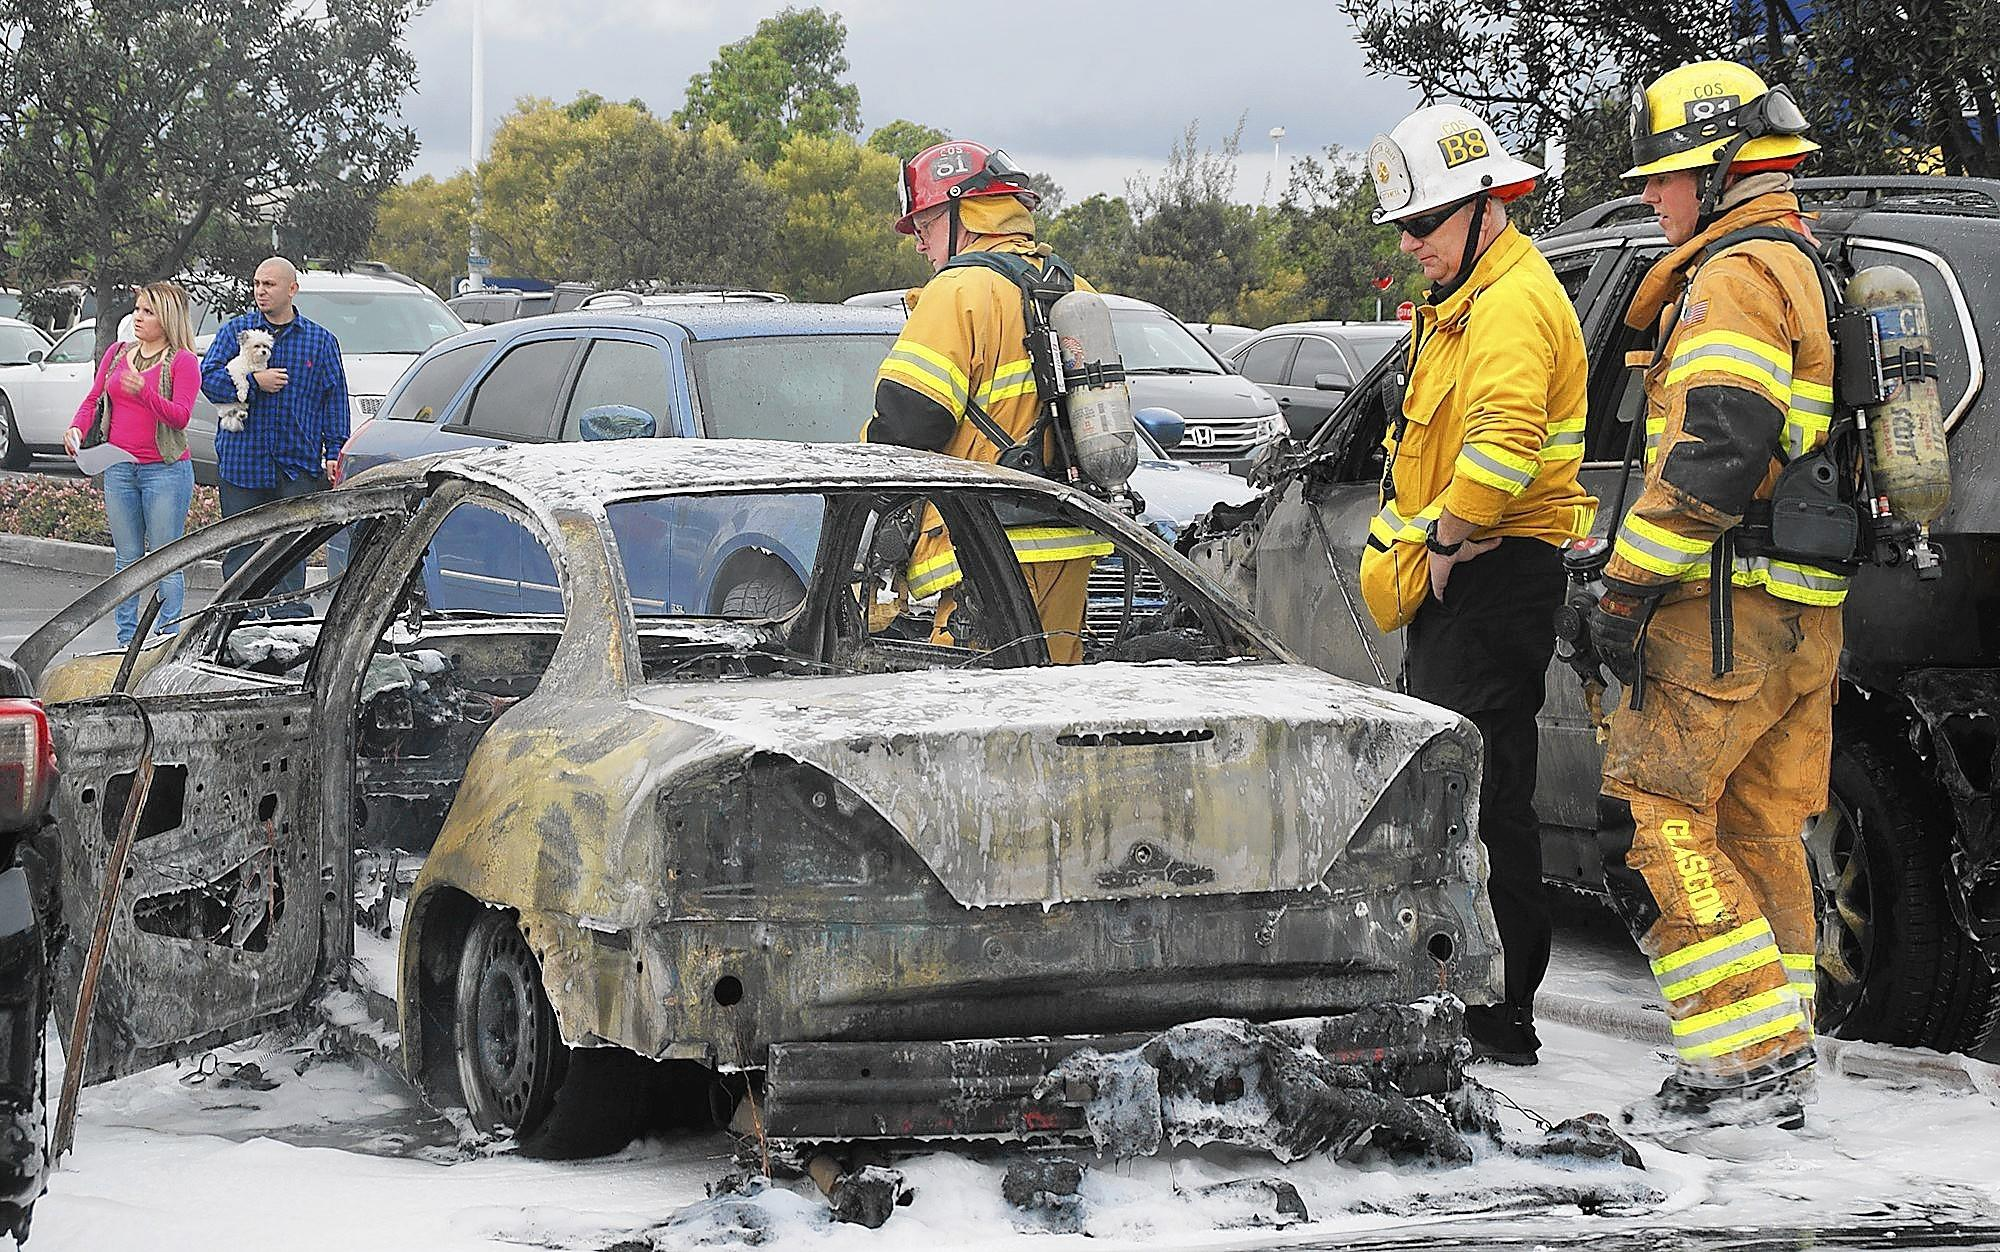 After extinguishing the blaze, Costa Mesa firefighters examine the remains of a car that caught on fire Sunday afternoon in Ikea's parking lot.